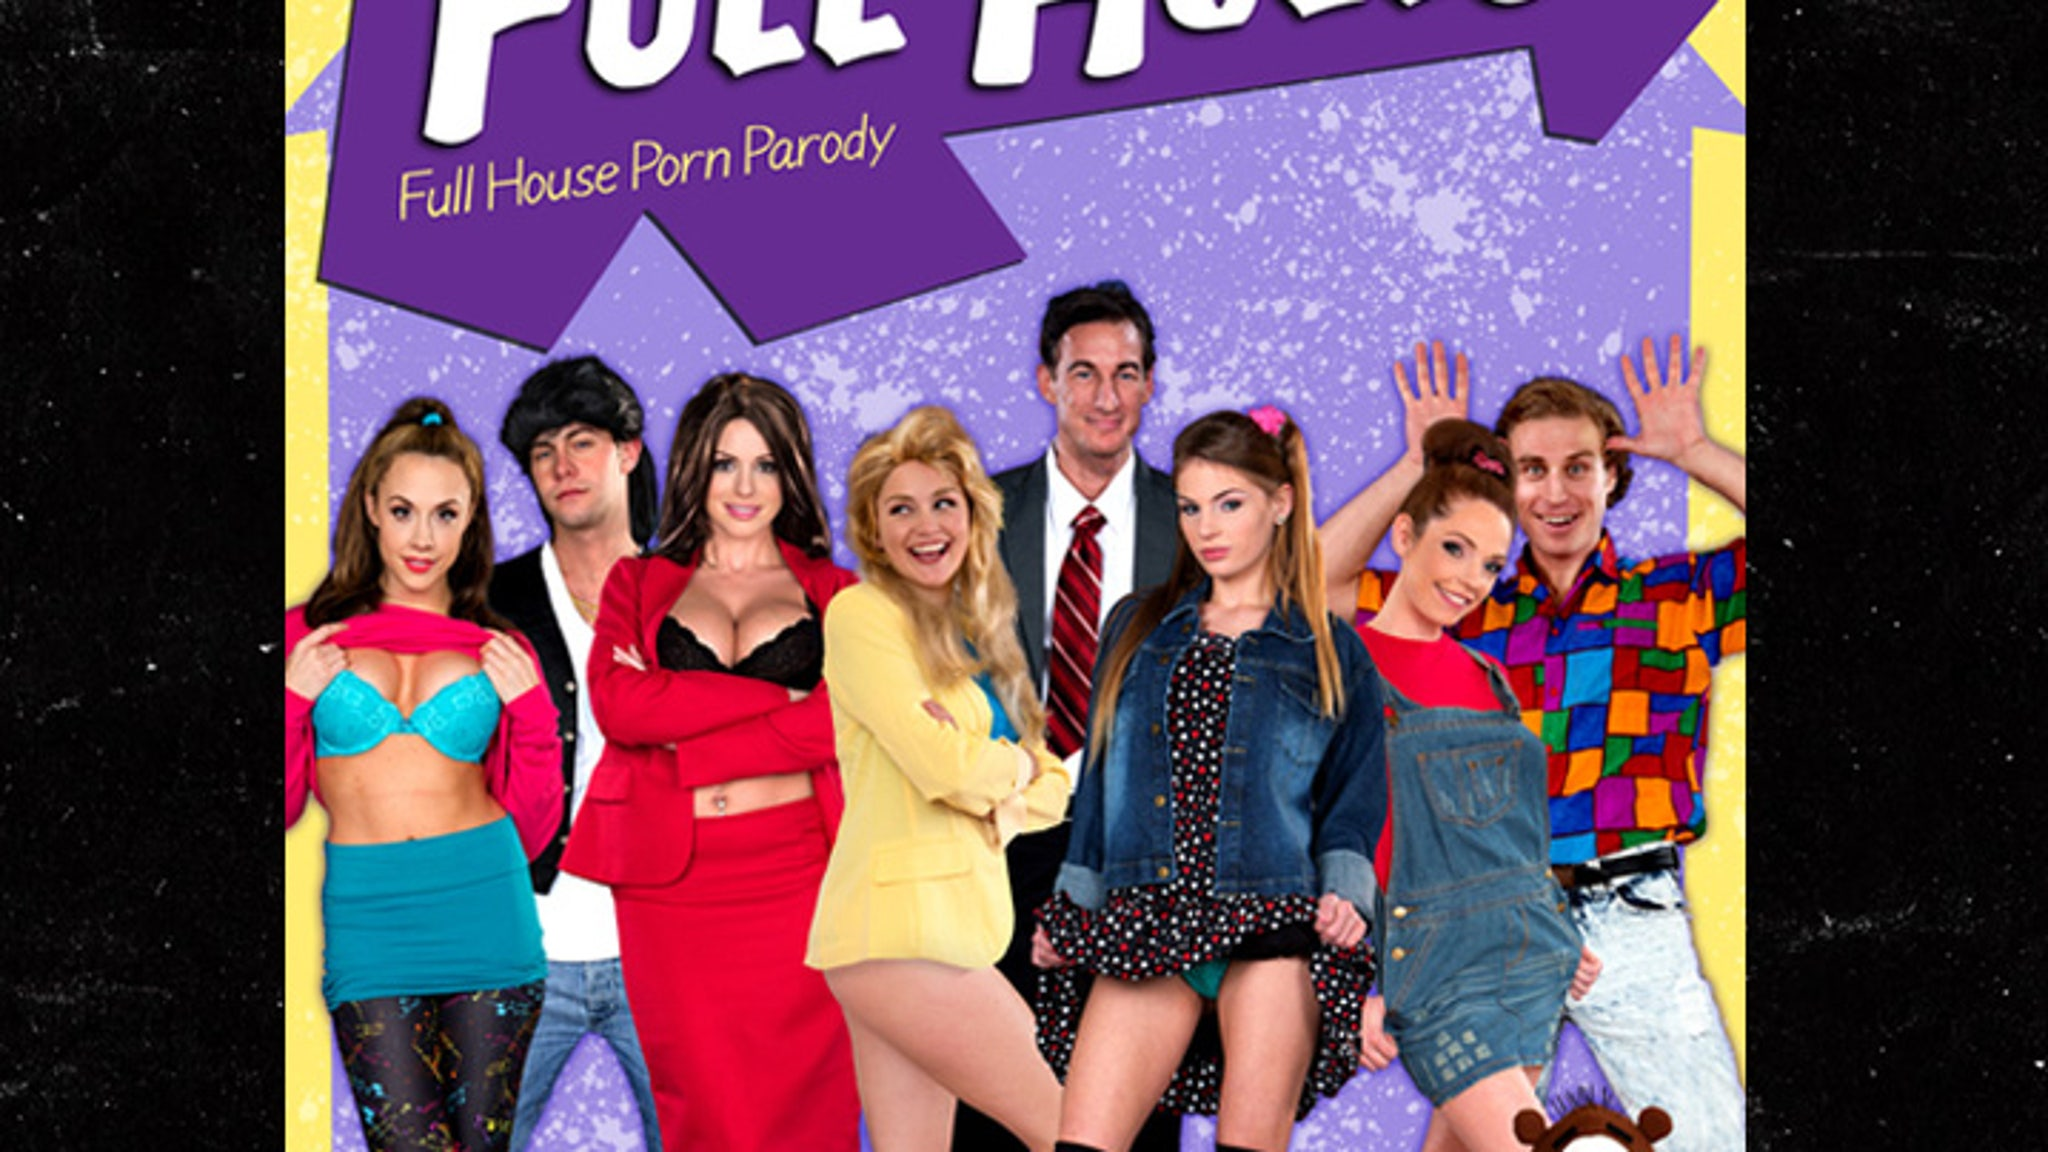 Full Holes Full House Parody - Hot XXX Pics, Free Porn ...